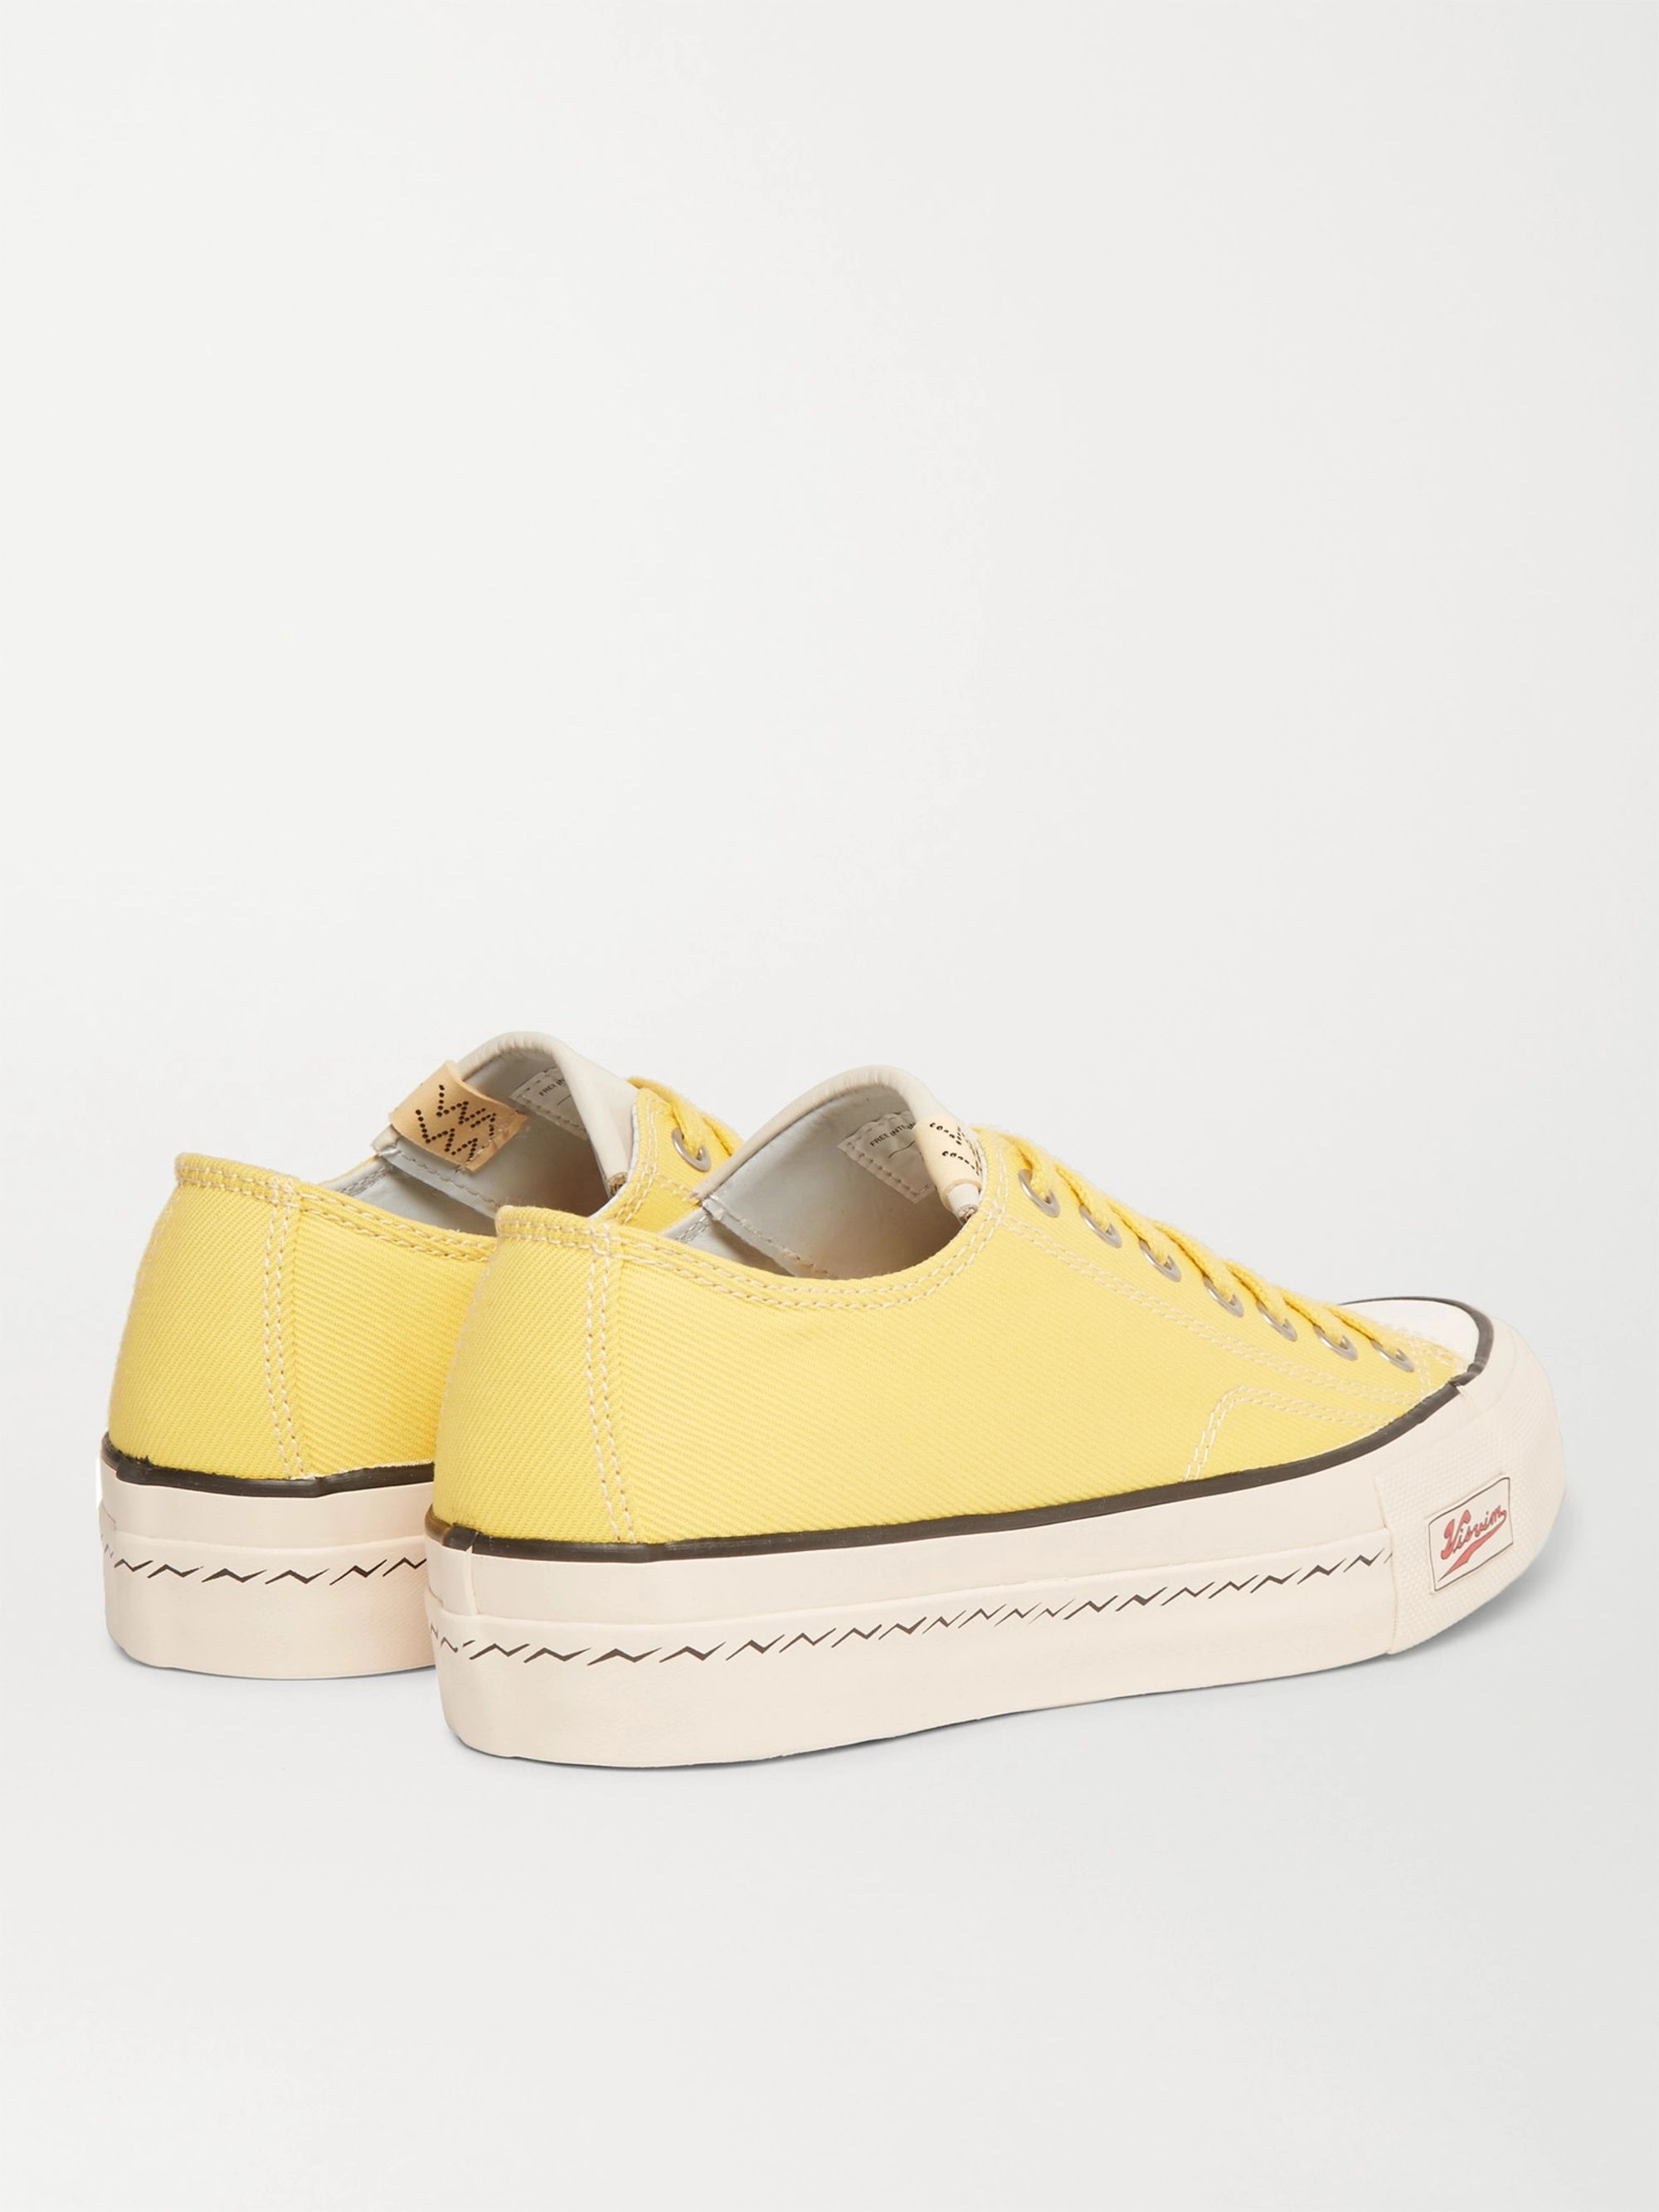 visvim Skagway Leather-Trimmed Canvas Sneakers